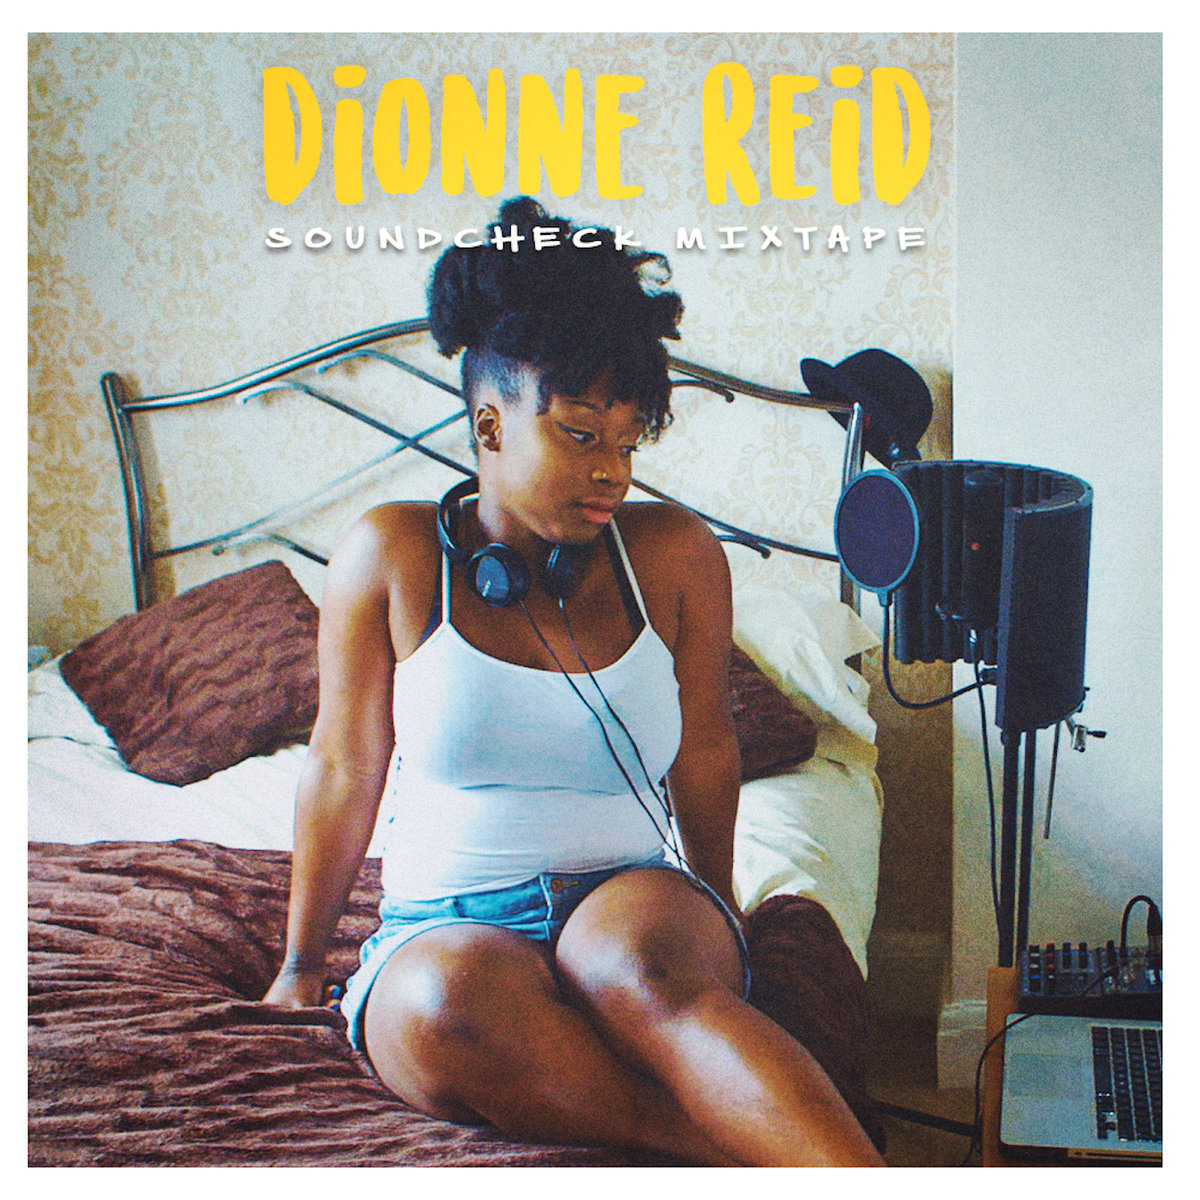 Tipp: Dionne Reid – Soundcheck Mixtape // free download